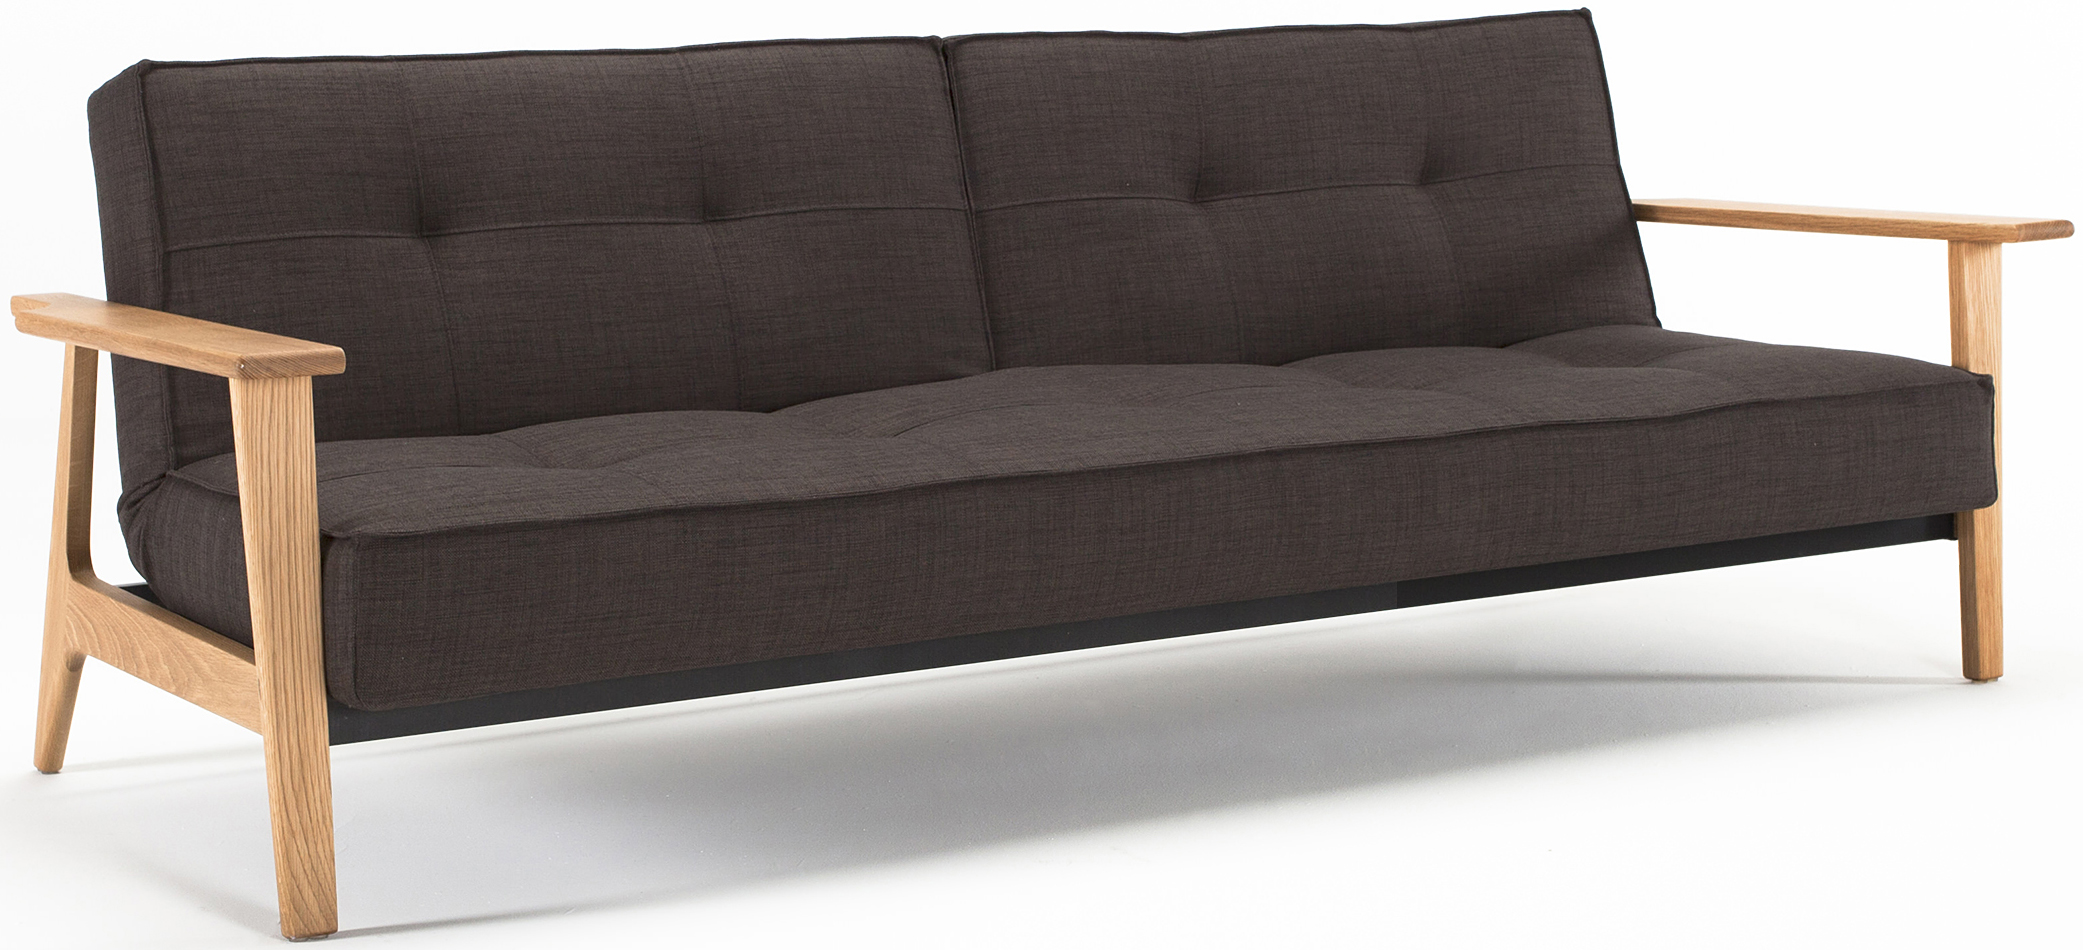 innovation living sofa splitback frej